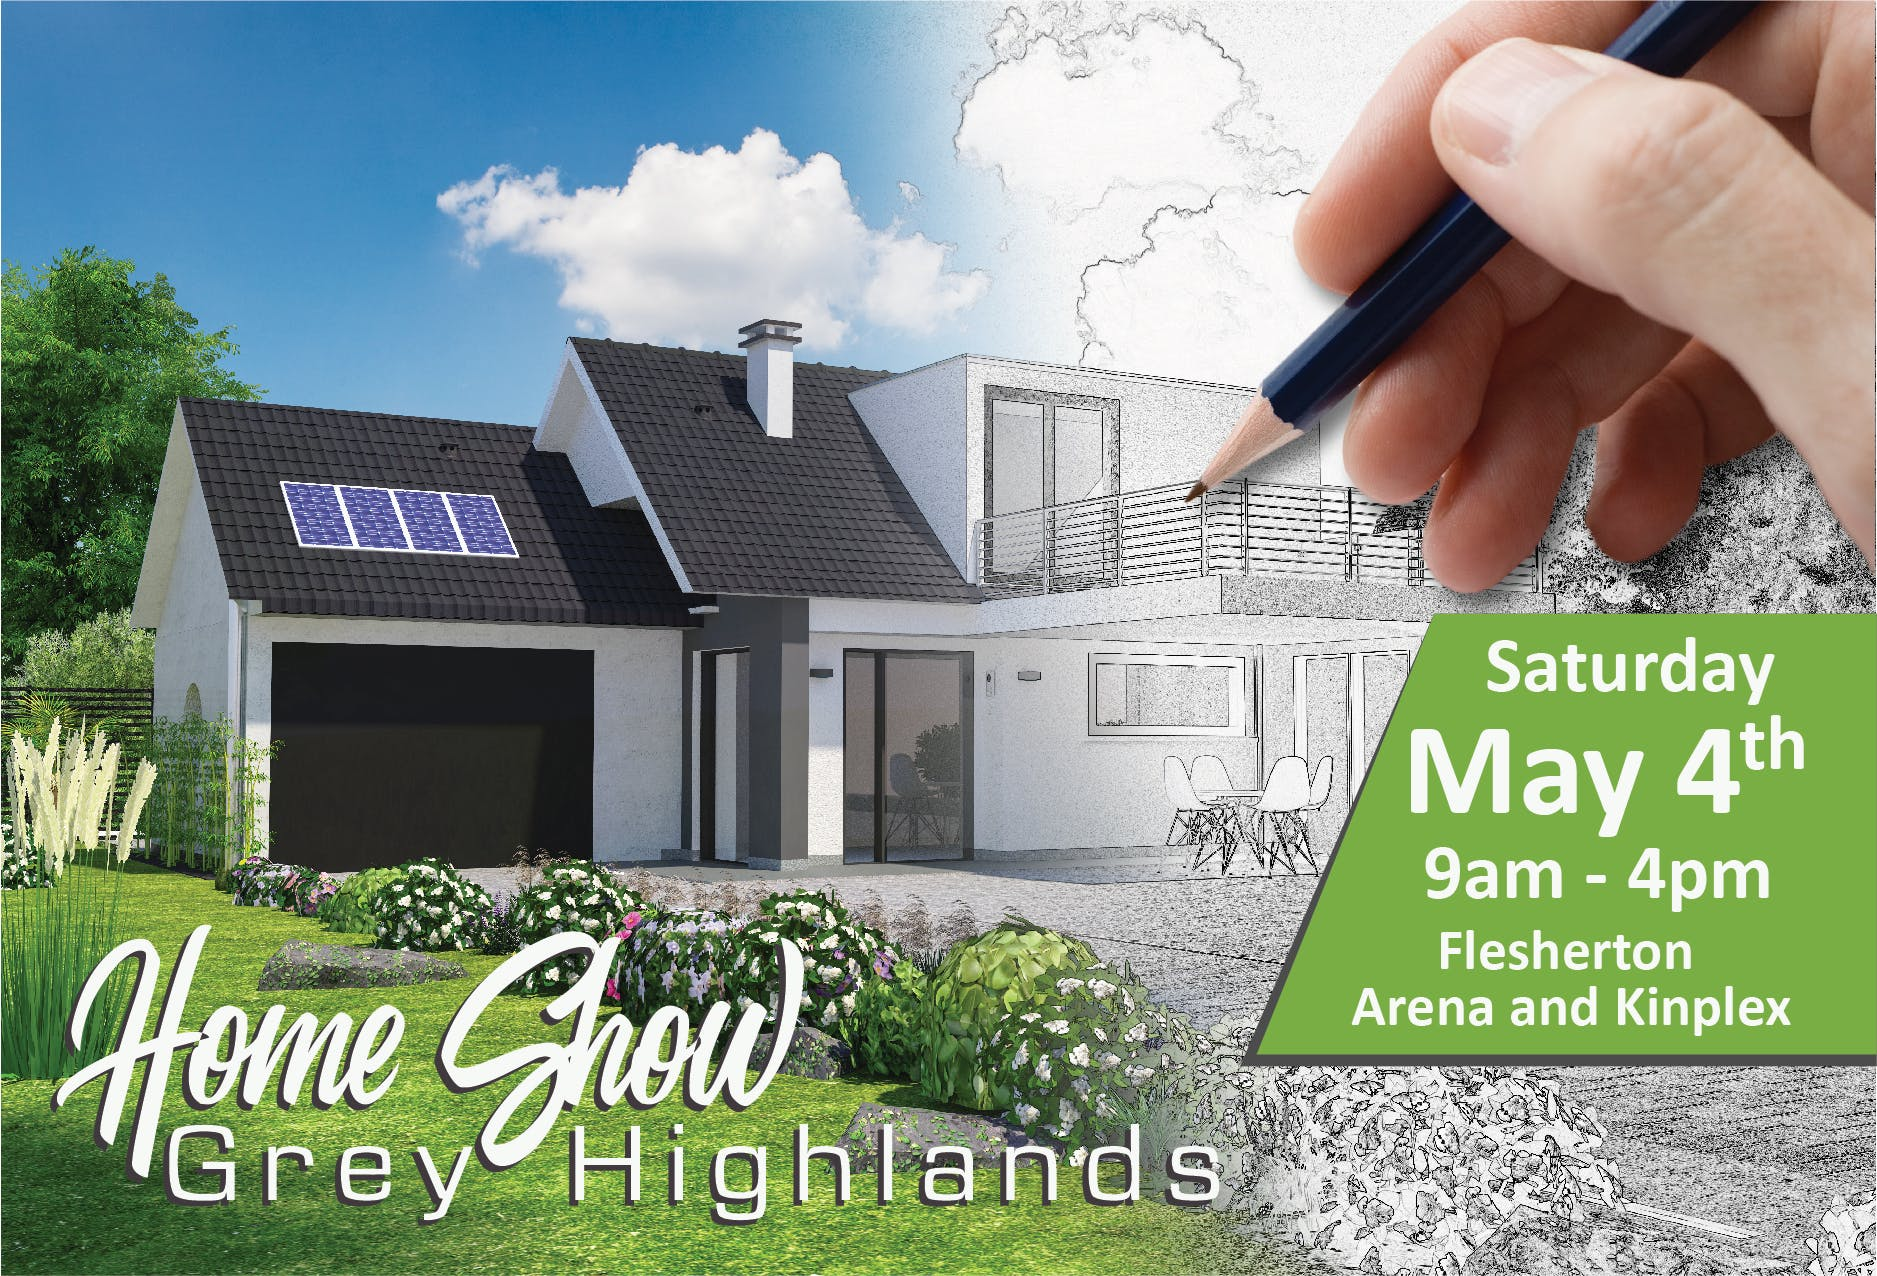 Grey Highlands second annual Home Show it set to take place Saturday May 4, 2019 at the Flesherton Arena and Kinplex.  The show will run from 9:00 am until 4:00 pm.